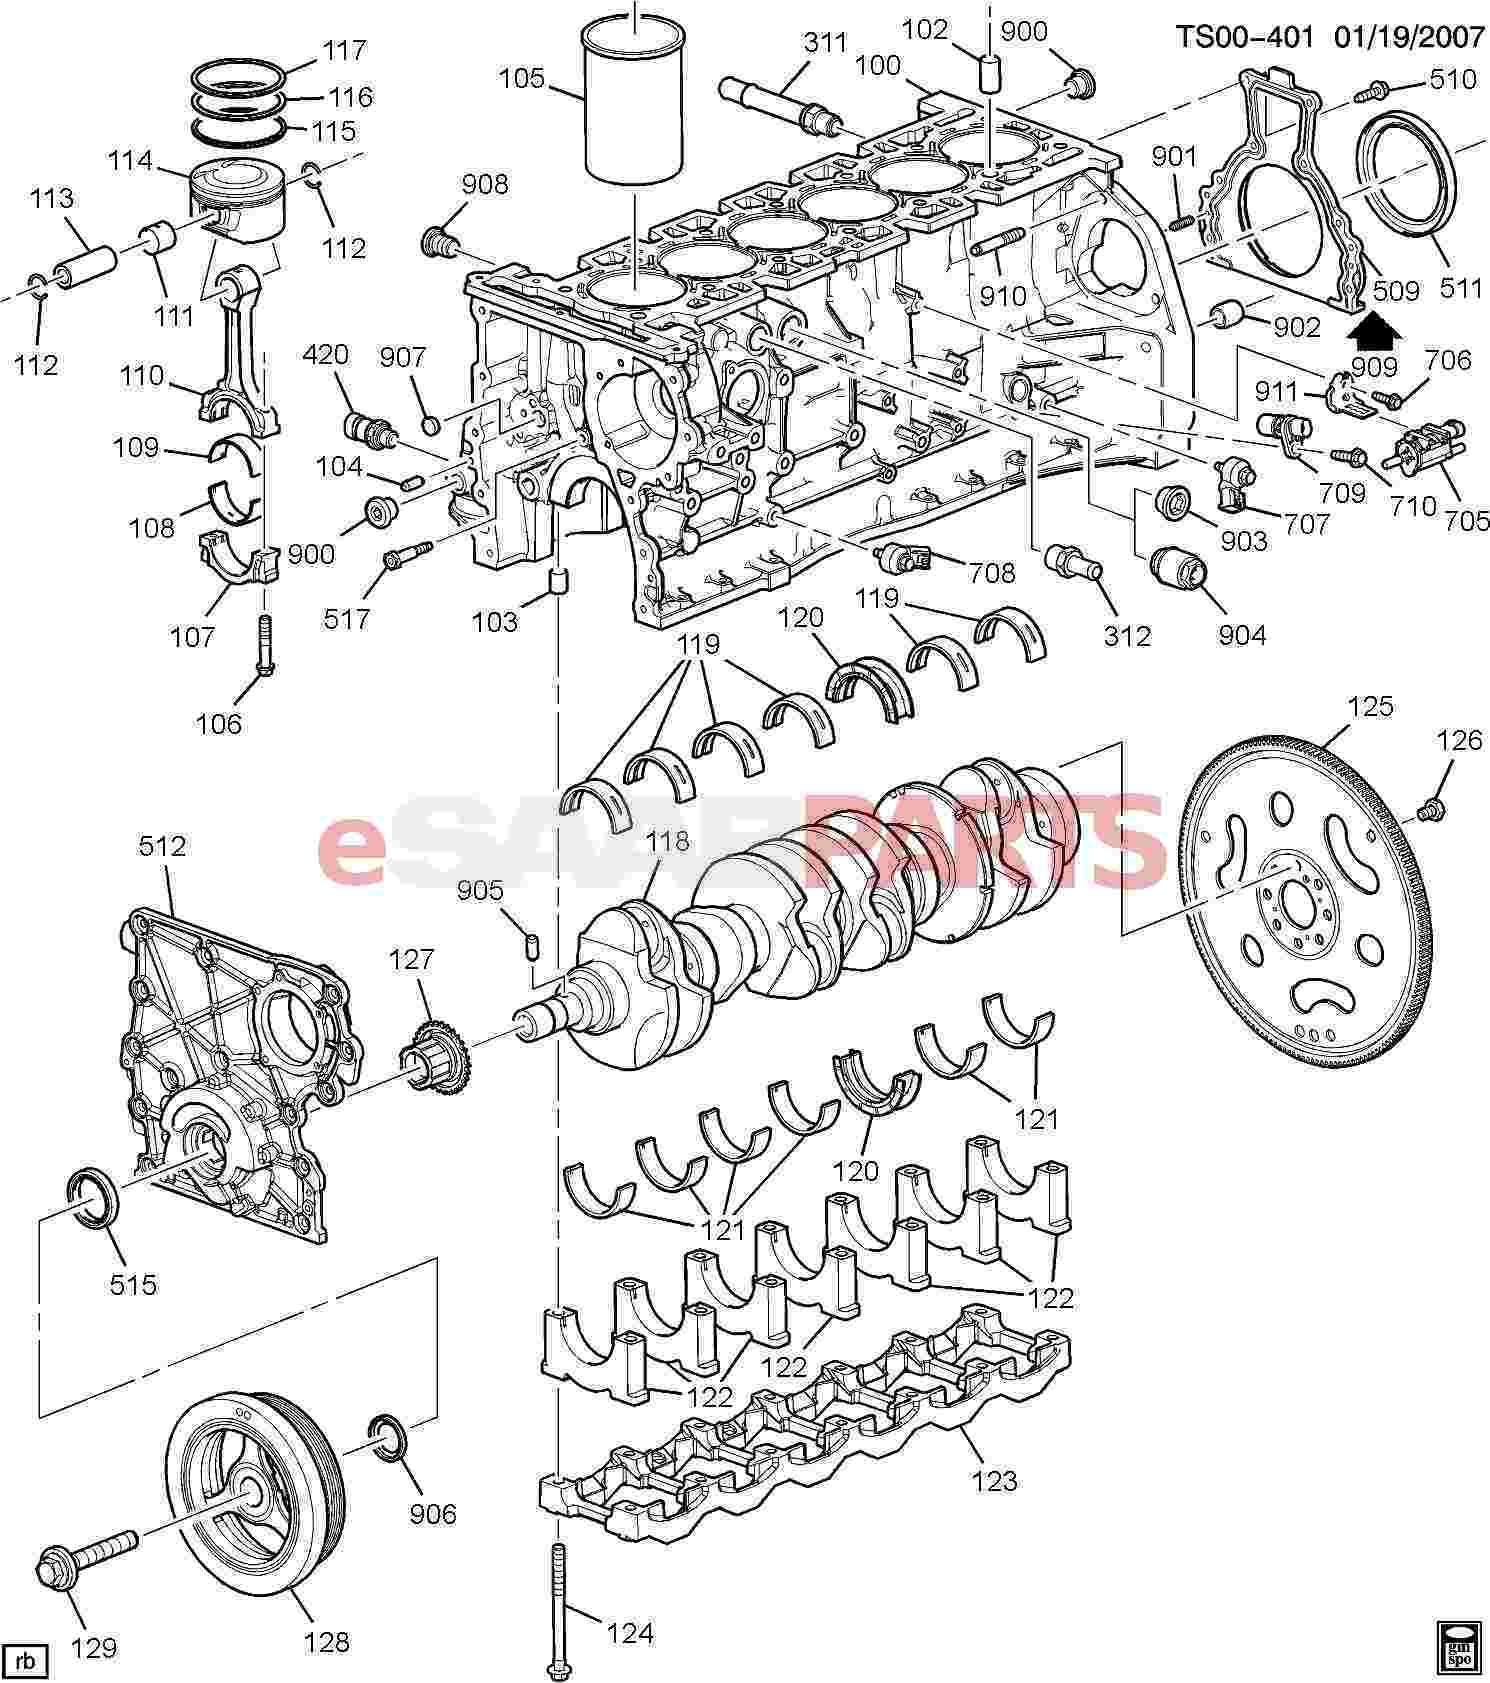 hight resolution of wrg 1615 chevrolet 4 2 l6 engine diagram chevrolet 4 2 l6 engine diagram